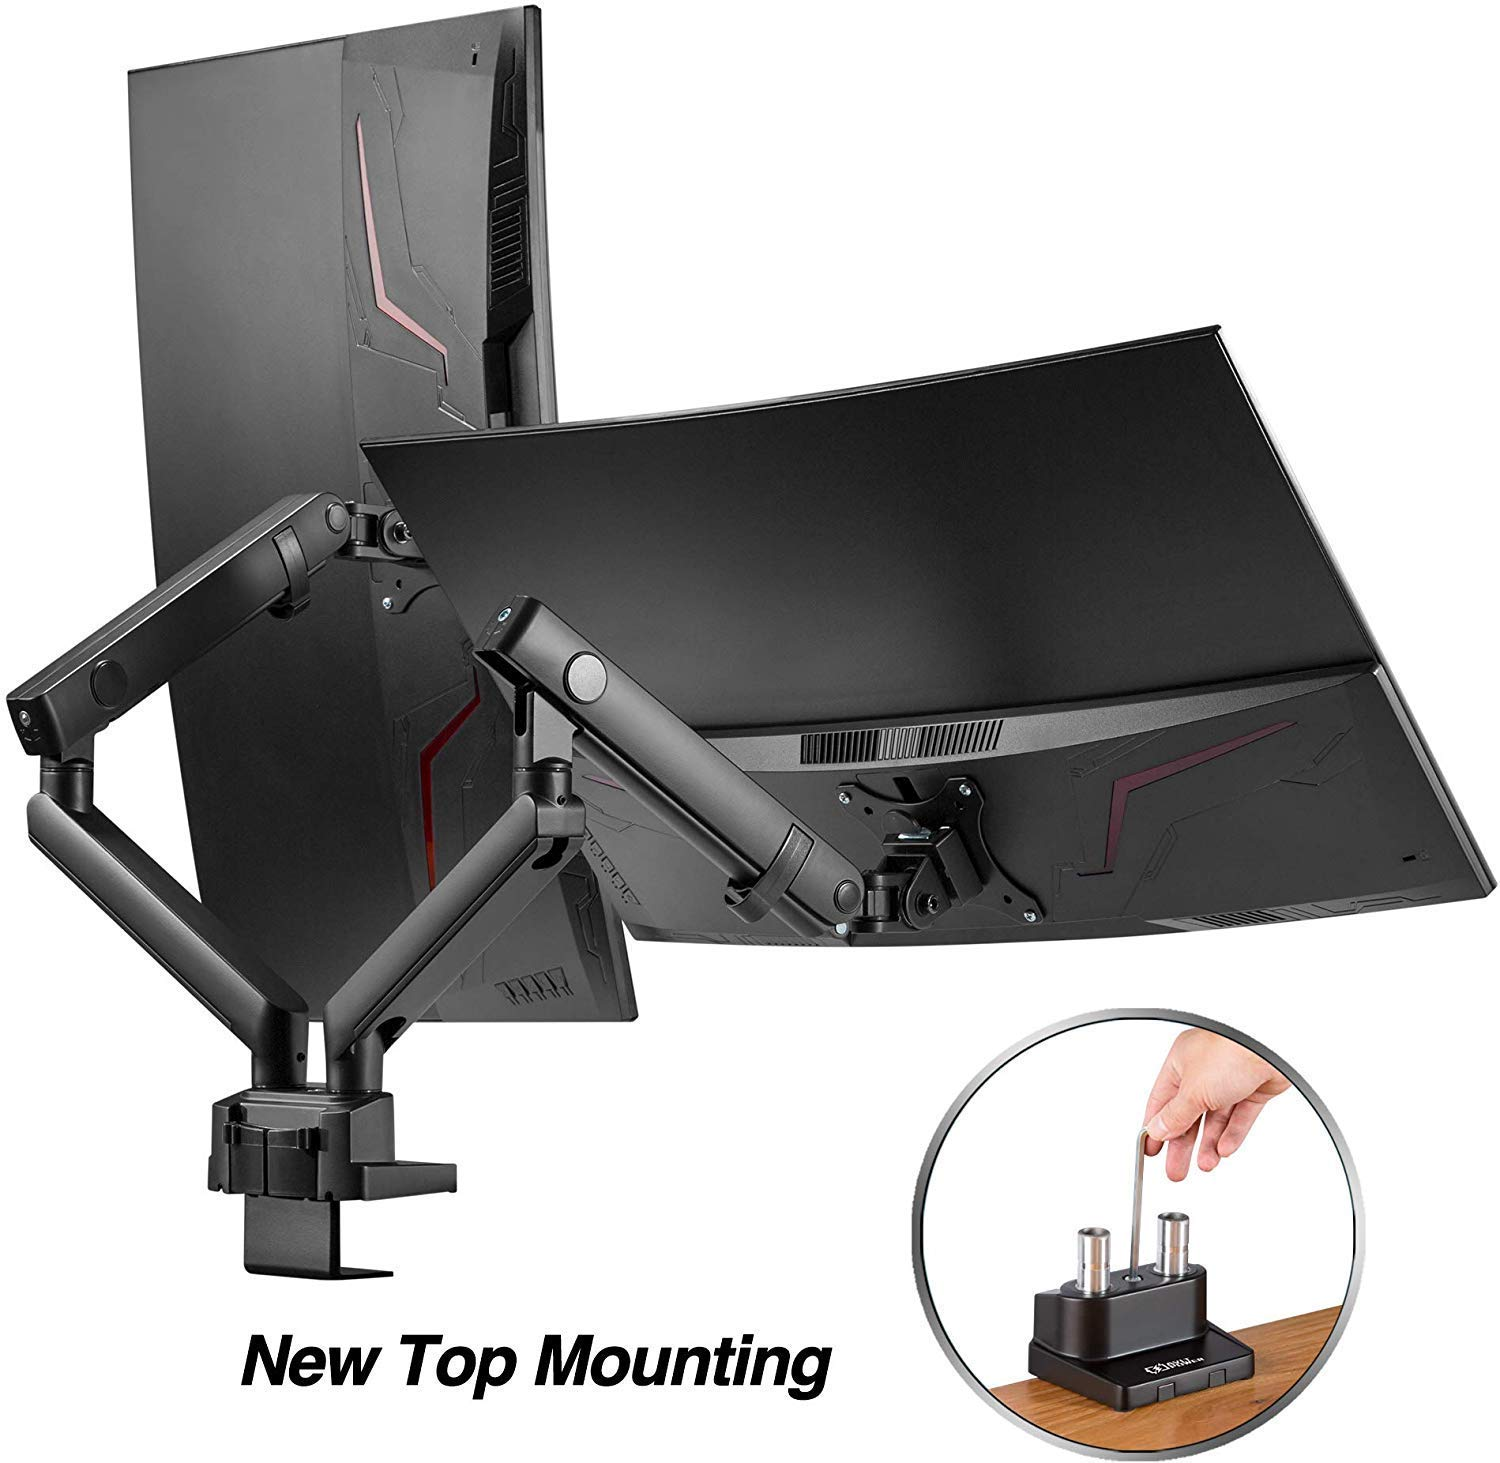 "AVLT-Power Dual 32"" Monitor Desk Stand - Easy Installation New Top Mounting - Mount Two 17.6 lbs Computer Monitors on 2 Full Motion Adjustable Arms - Organize Your Work Surface with VESA Monitor Mount"